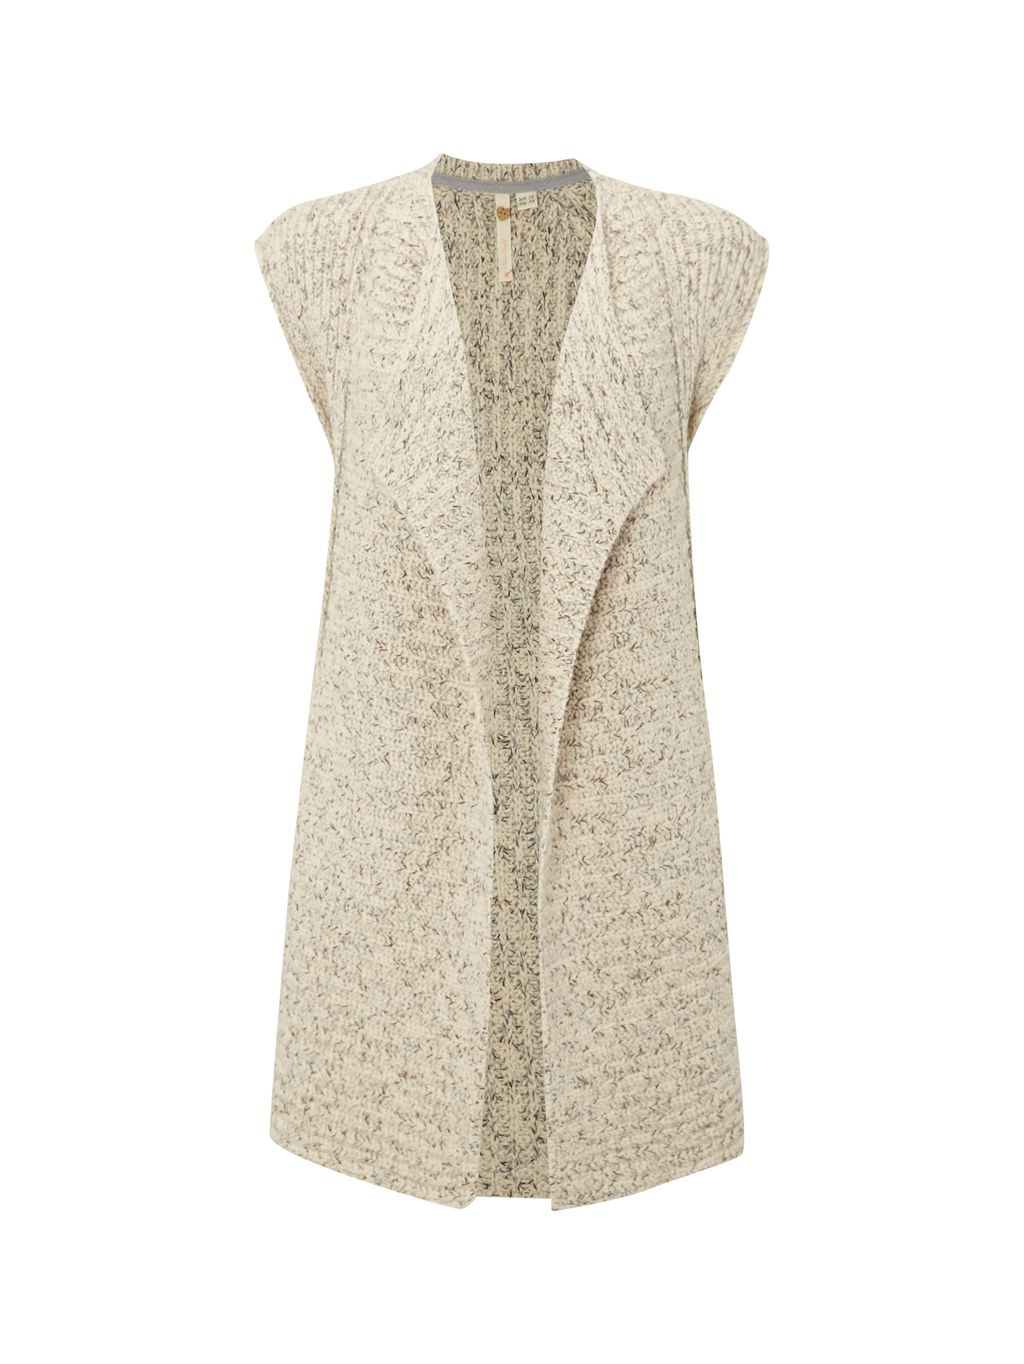 Flying Cardi, Natural - sleeve style: capped; pattern: plain; neckline: shawl; length: cropped; predominant colour: ivory/cream; occasions: casual, creative work; style: standard; fibres: cotton - mix; fit: loose; sleeve length: short sleeve; texture group: knits/crochet; pattern type: knitted - other; season: s/s 2016; wardrobe: basic